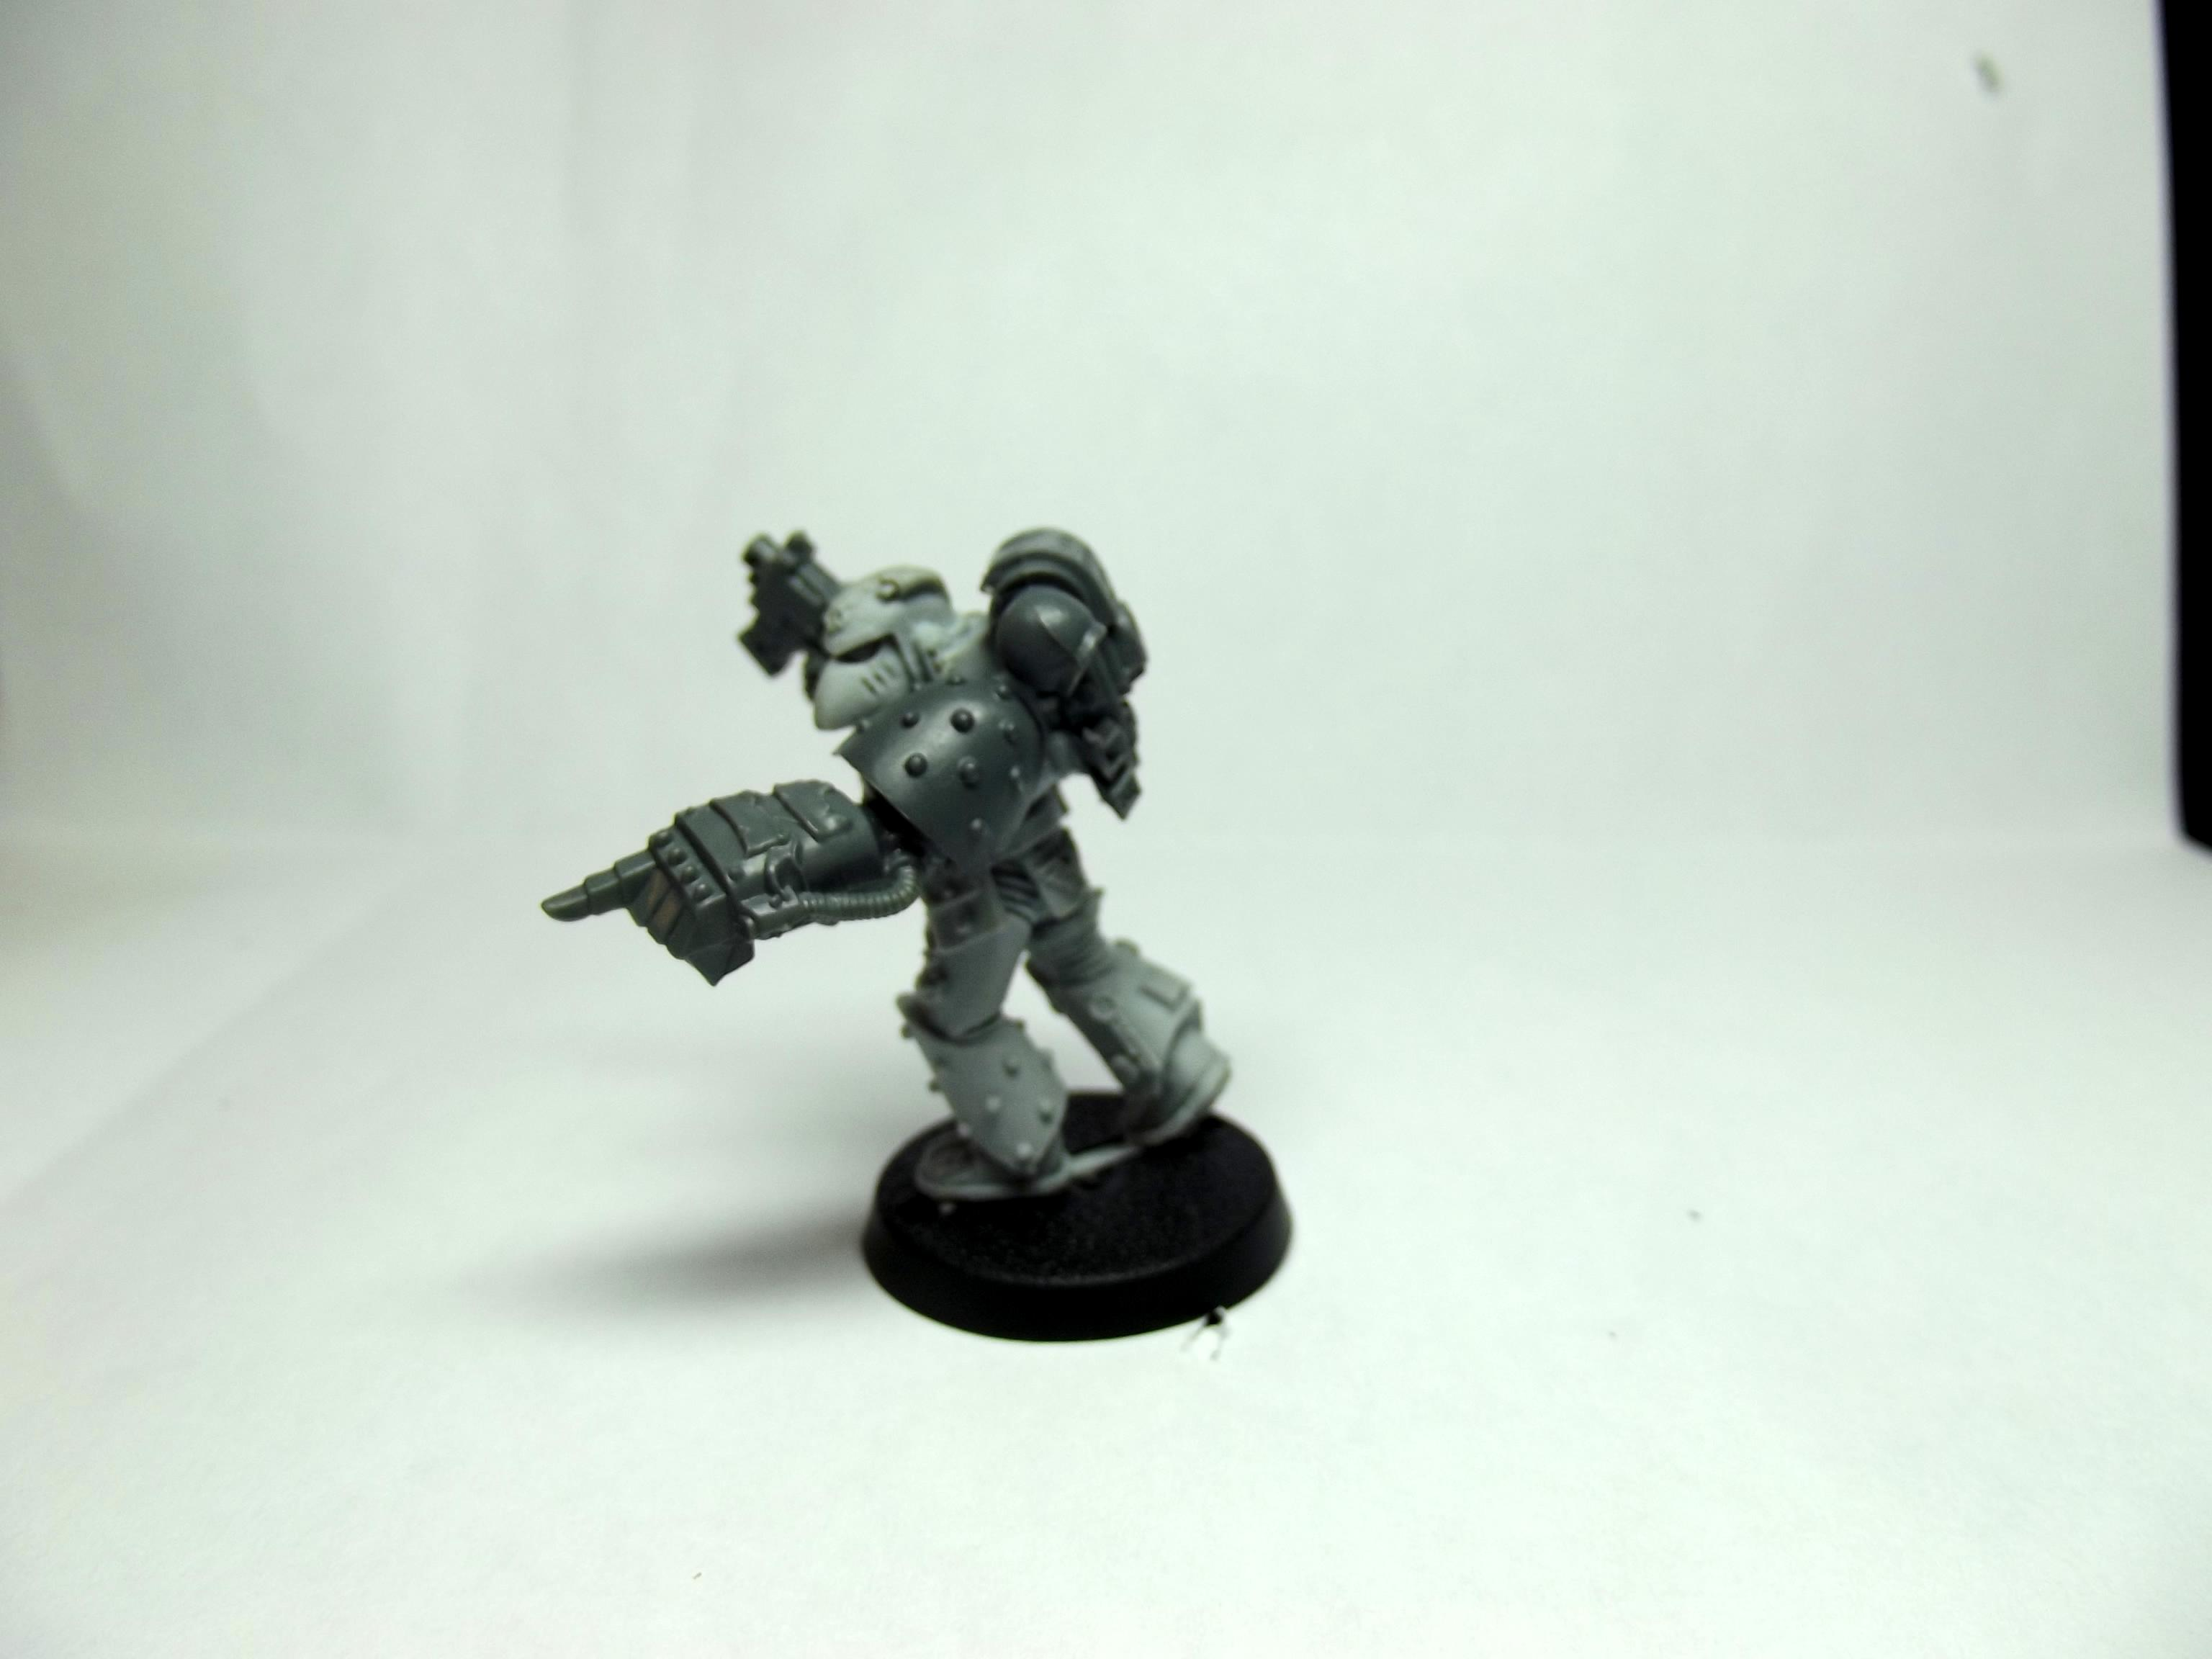 Apothecary, Same model with power fist